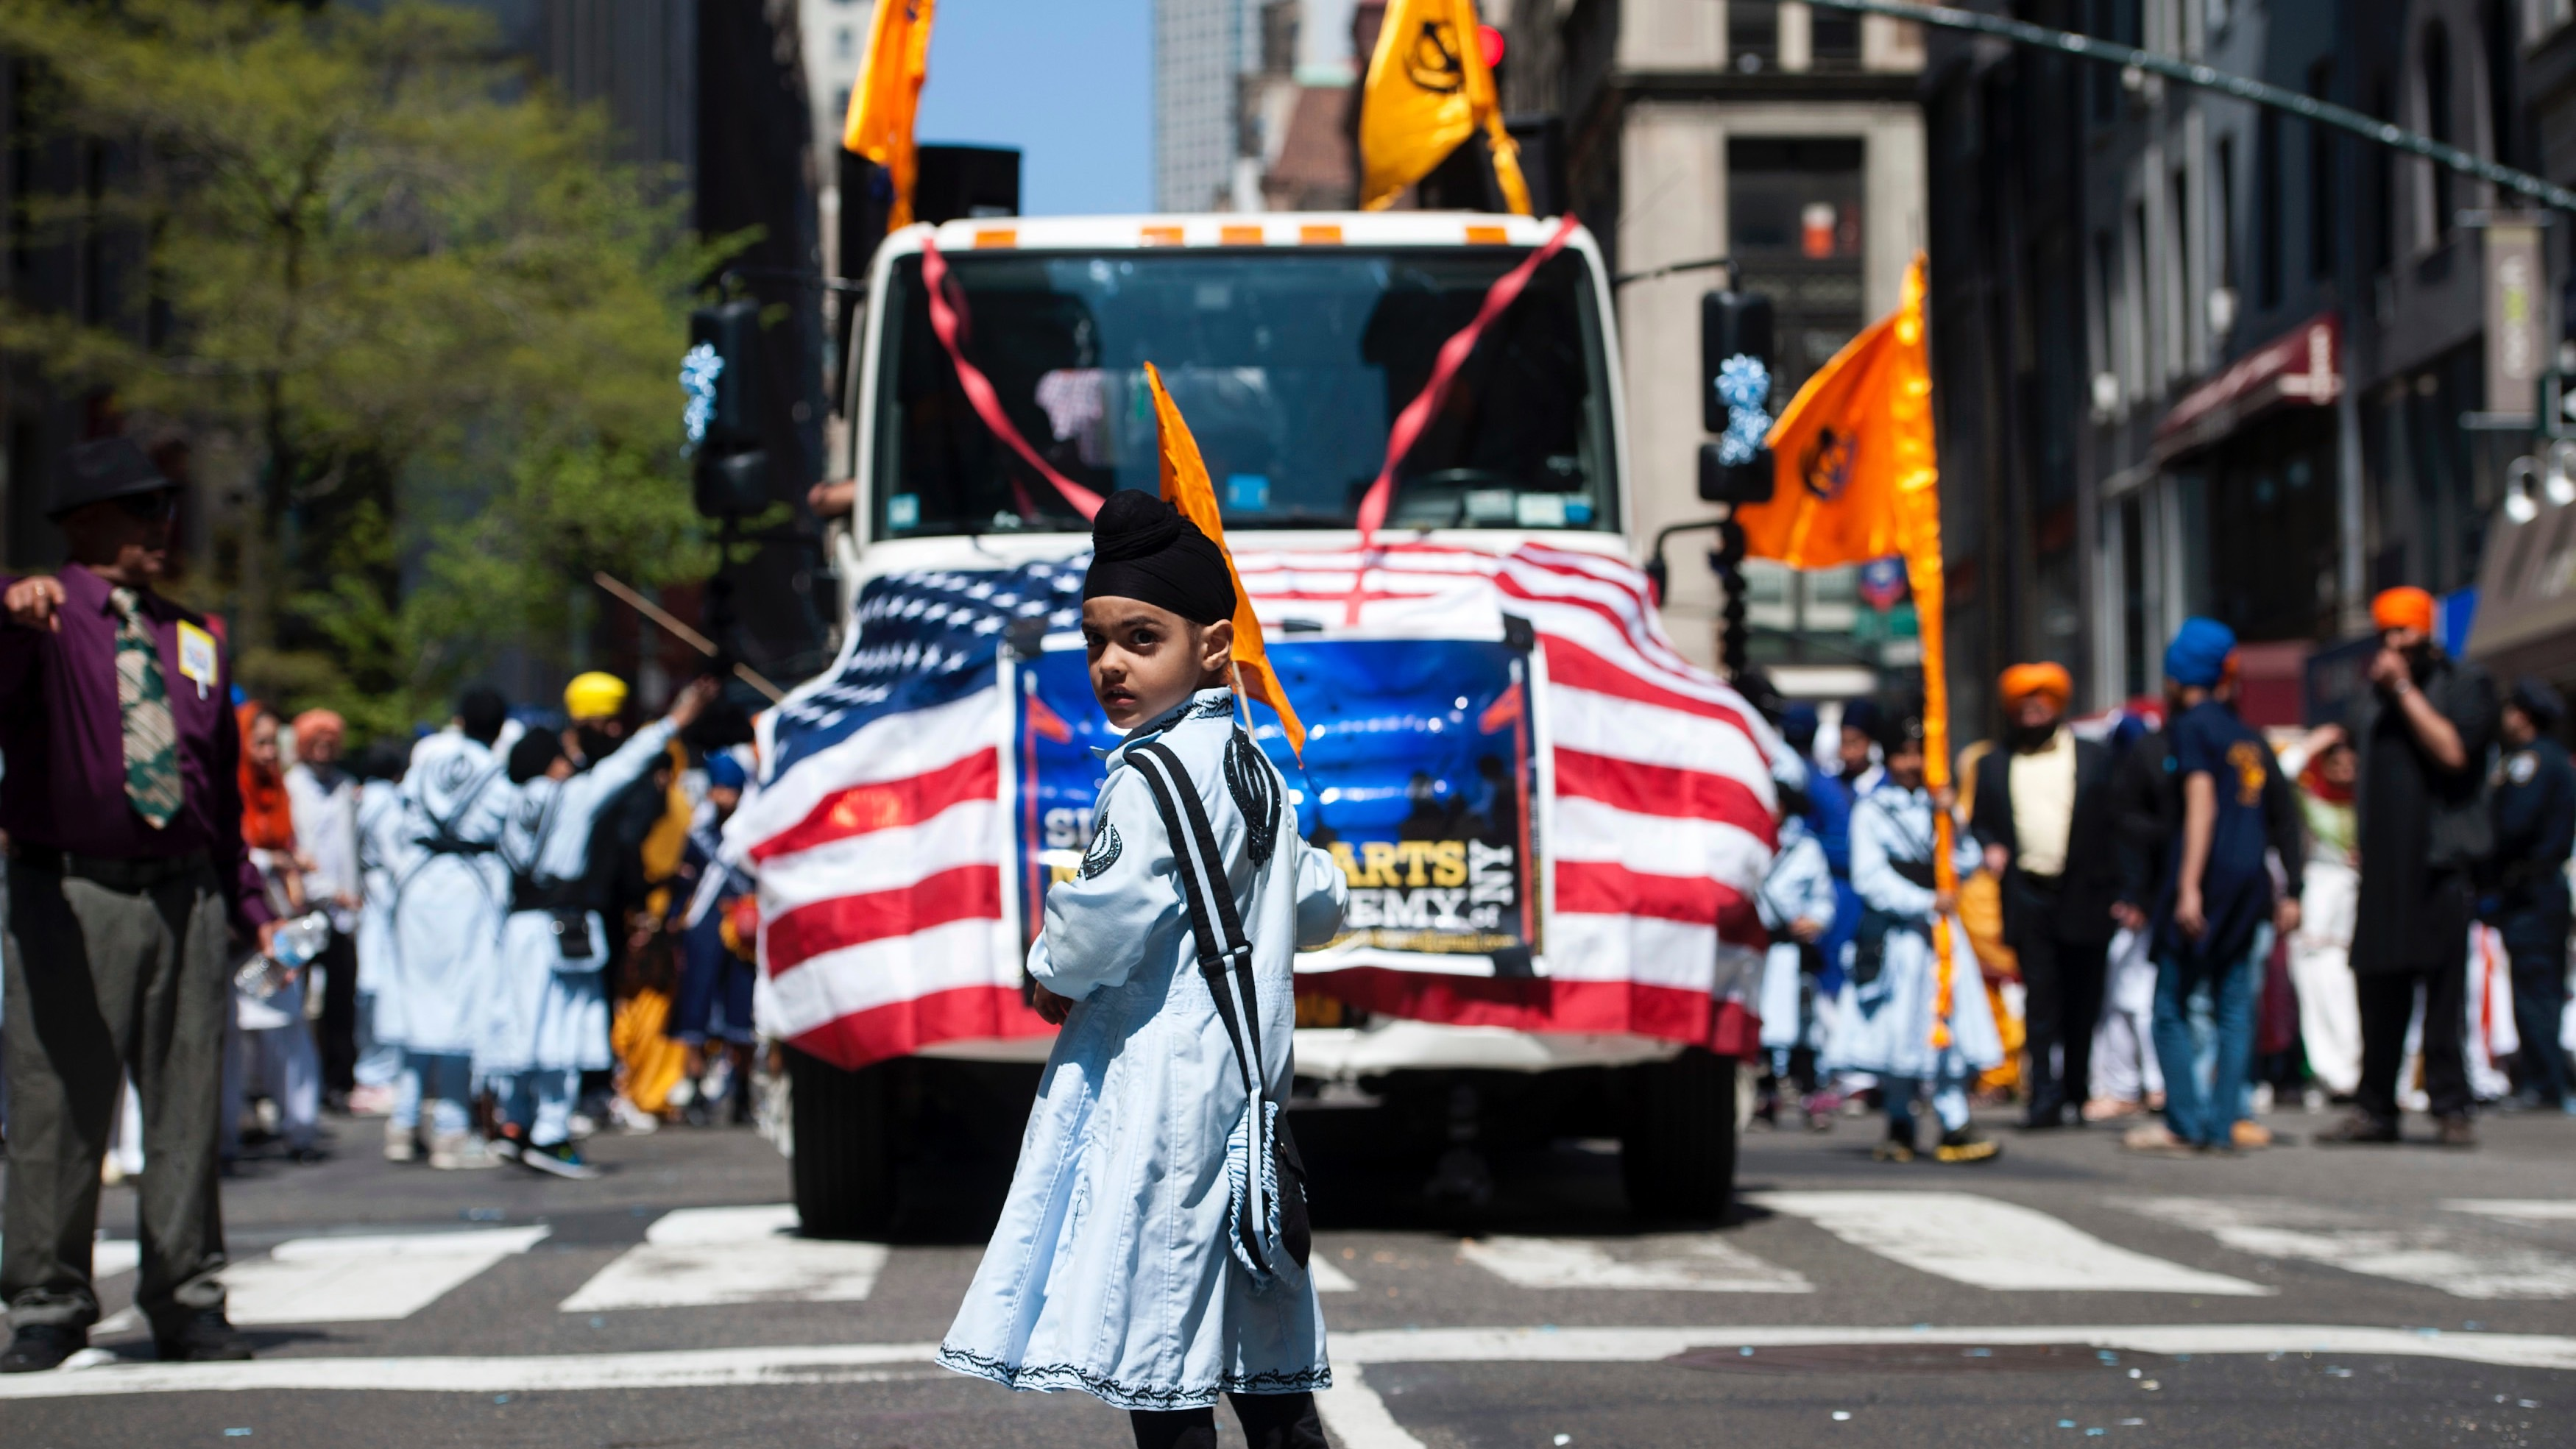 A Sikh boy marches in the annual Sikh Day Parade in New York, April 27, 2013.  REUTERS/Keith Bedford (UNITED STATES - Tags: RELIGION SOCIETY TPX IMAGES OF THE DAY) - RTXZ1YK